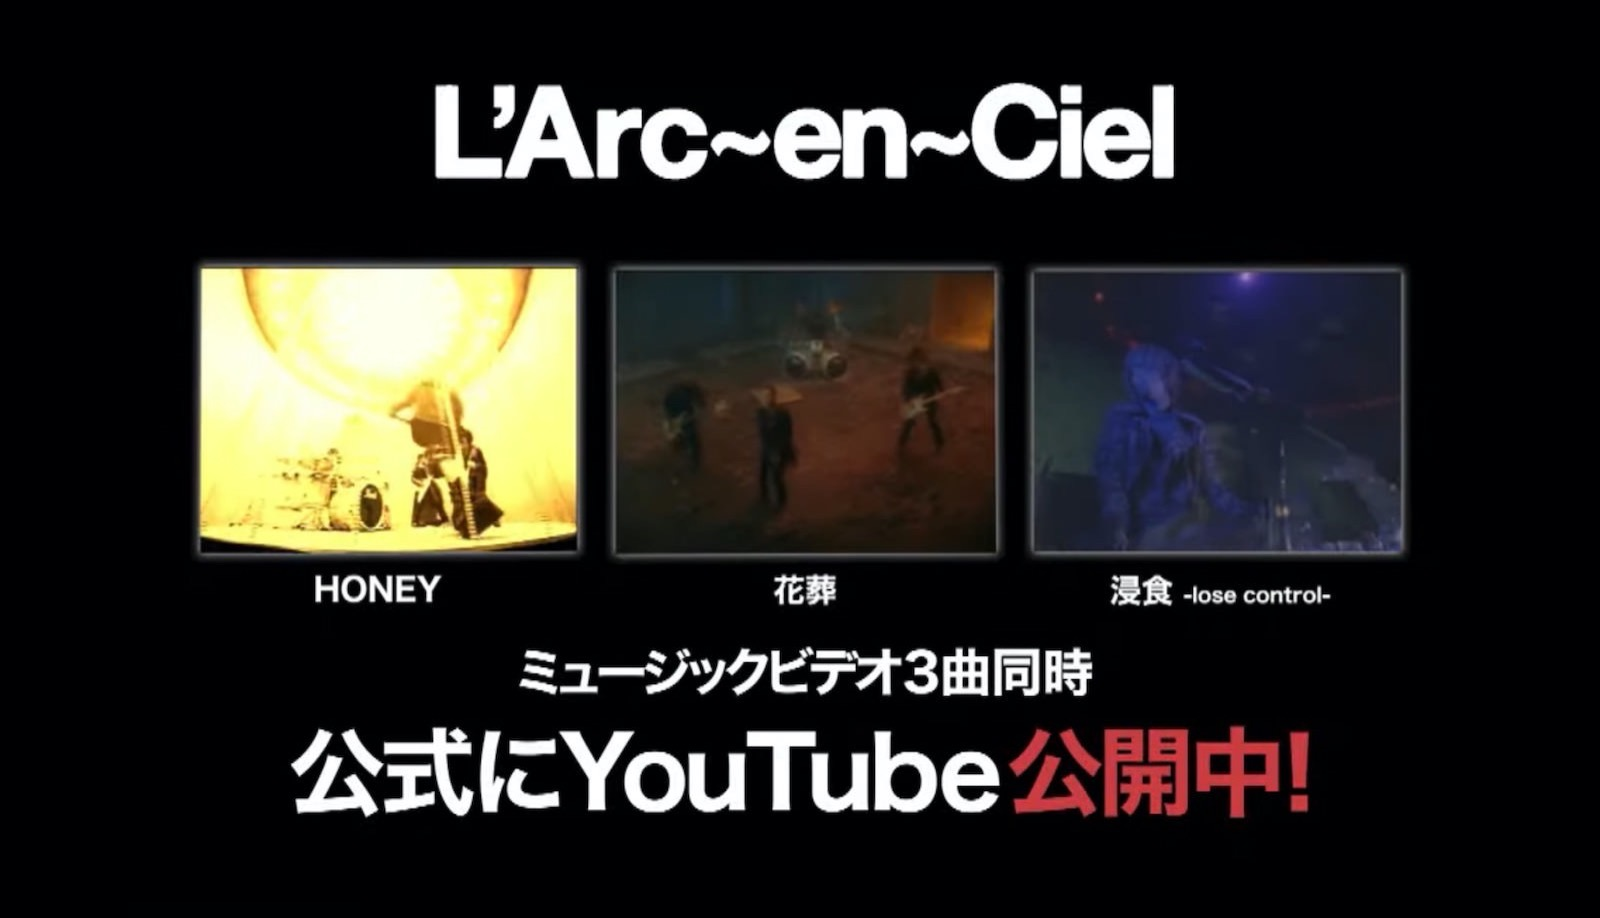 Larc en ciel youtube